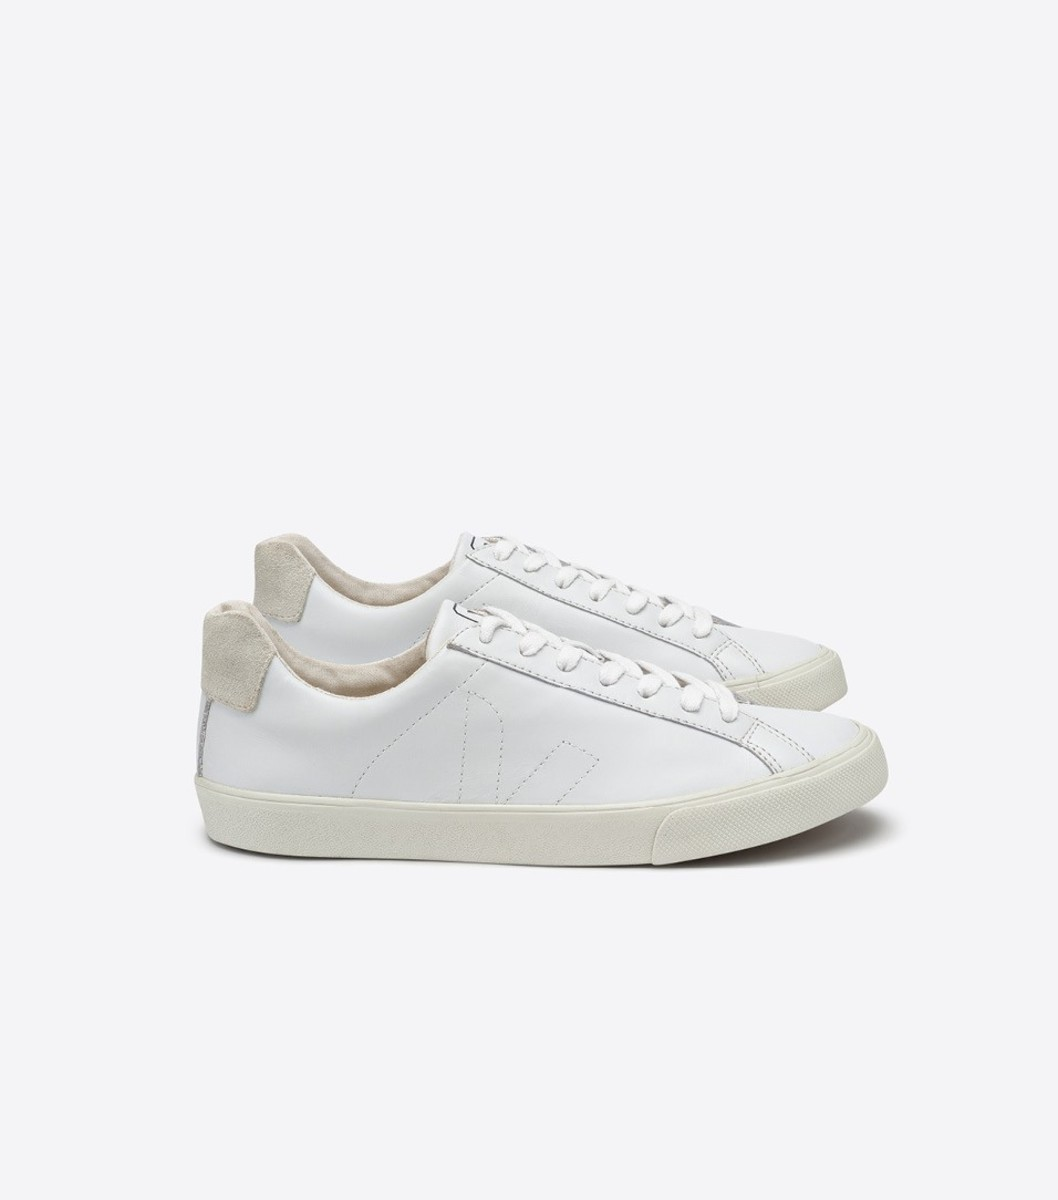 Veja Esplar leather extra white sneakers, $120, available at Bandier. Photo: Veja